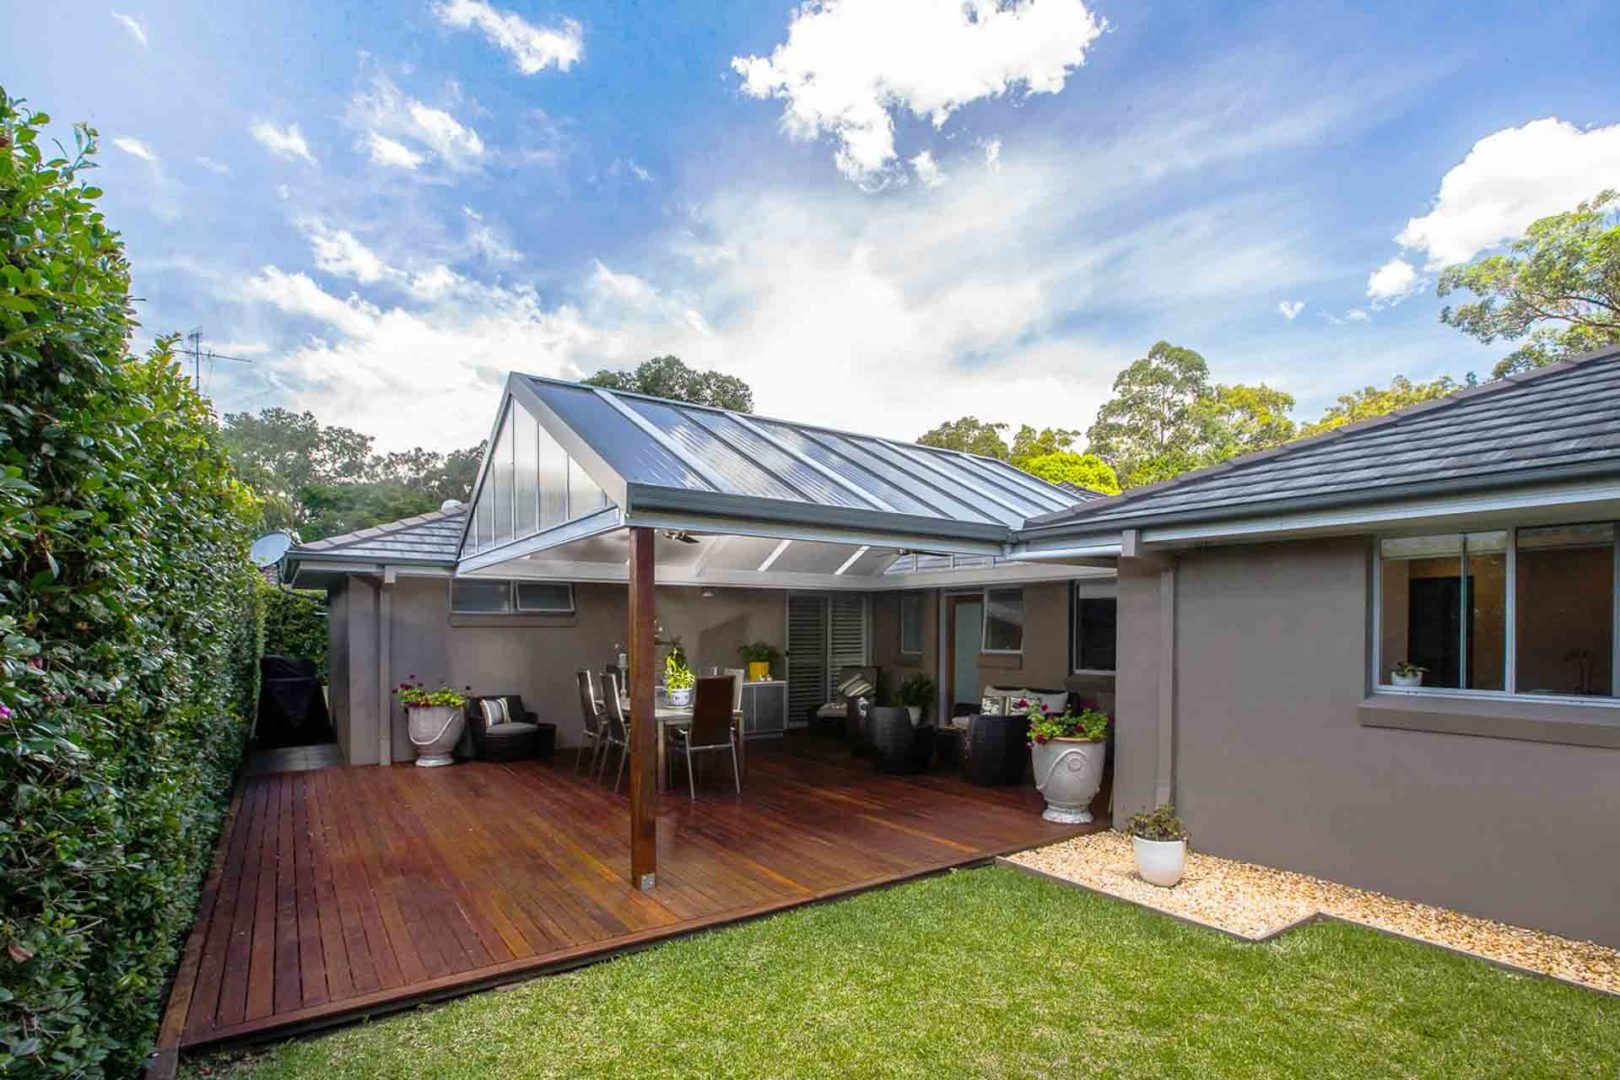 How to design your pergola or verandah - A bit of greenery can bring your outdoor space to life, Australian Outdoor Living